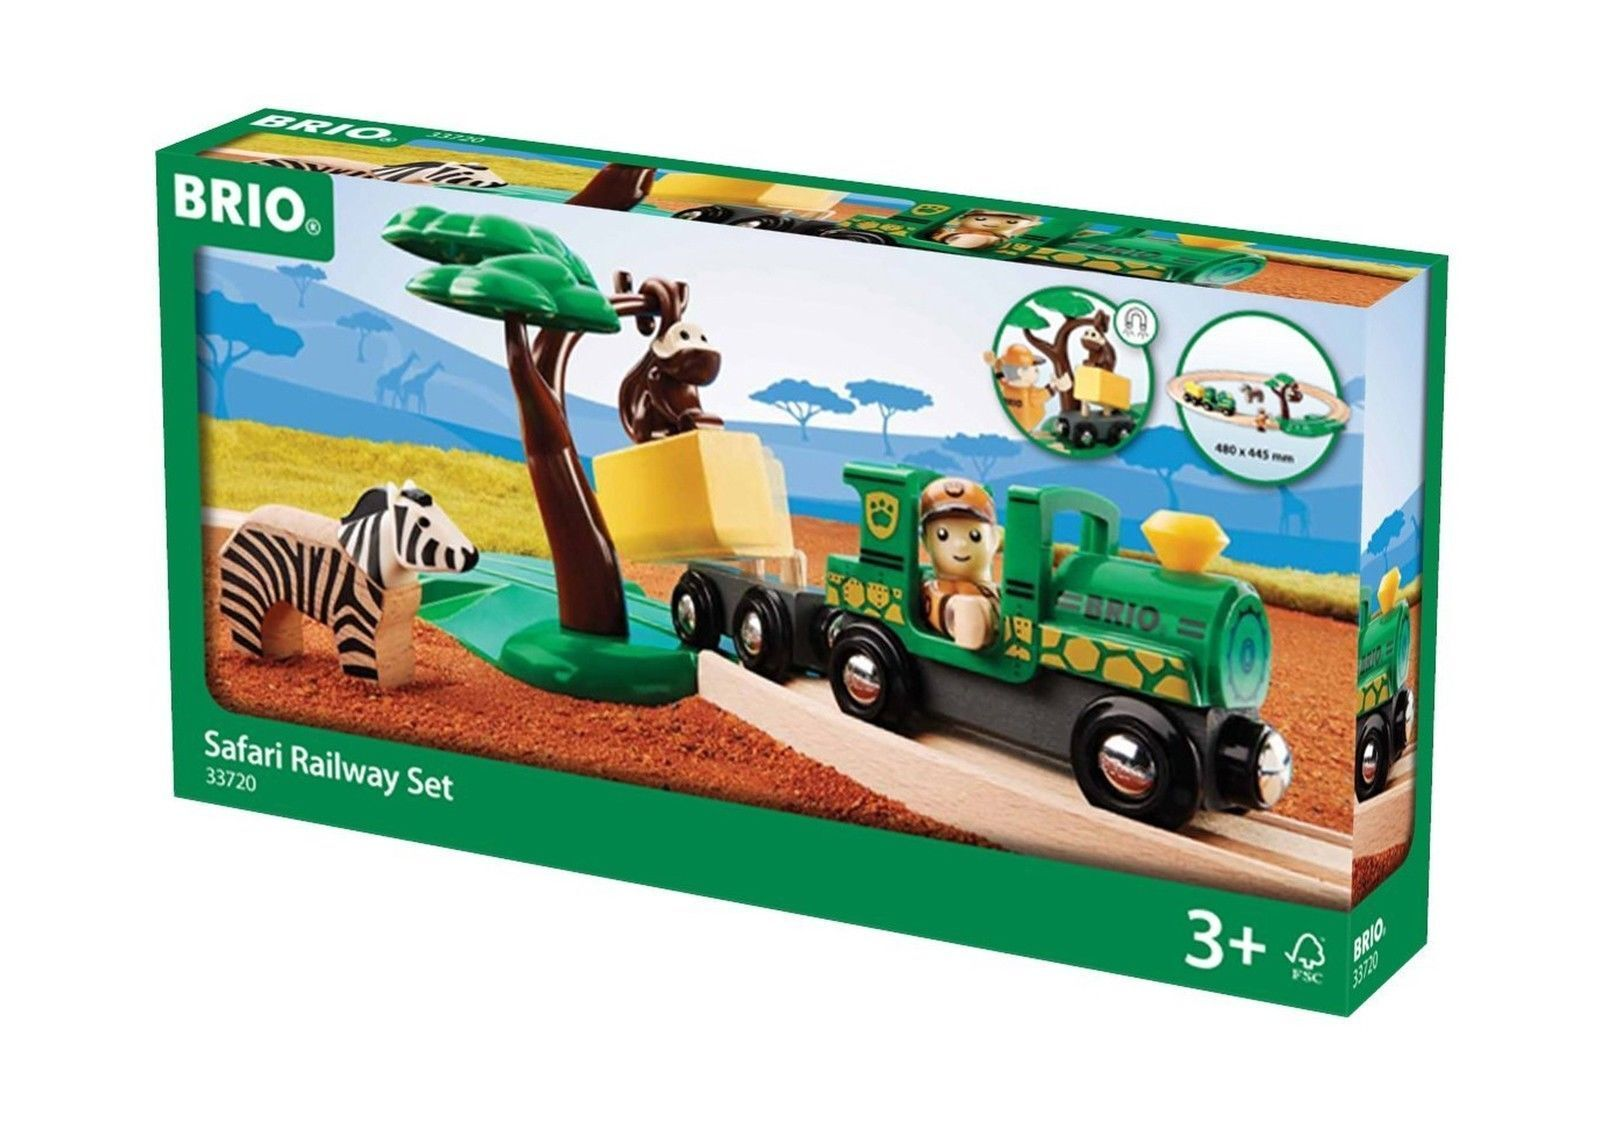 BRIO Safari Railway Set Train Set